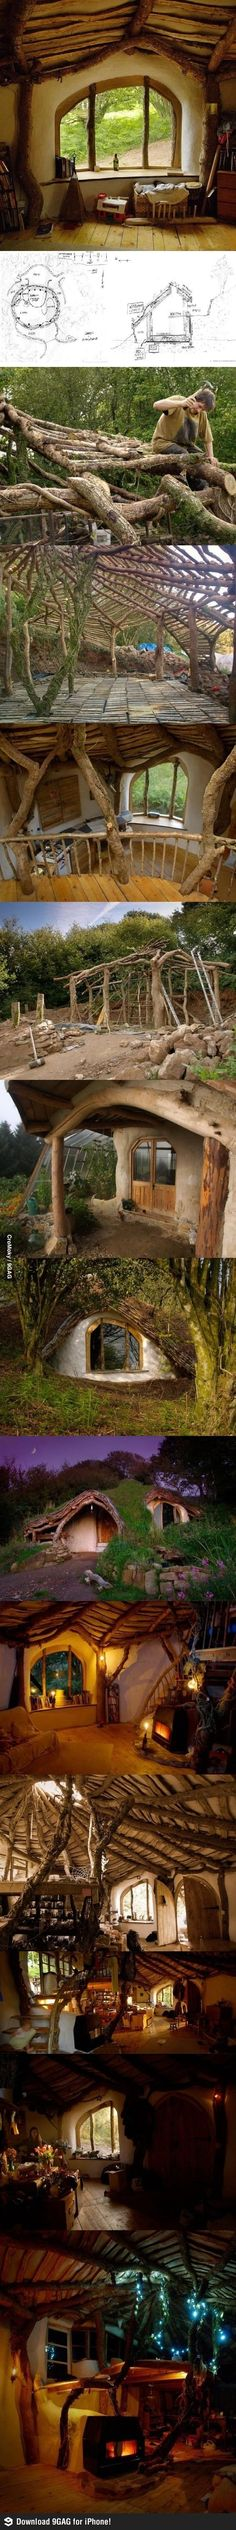 How to build a HOBBIT house by AFiskie